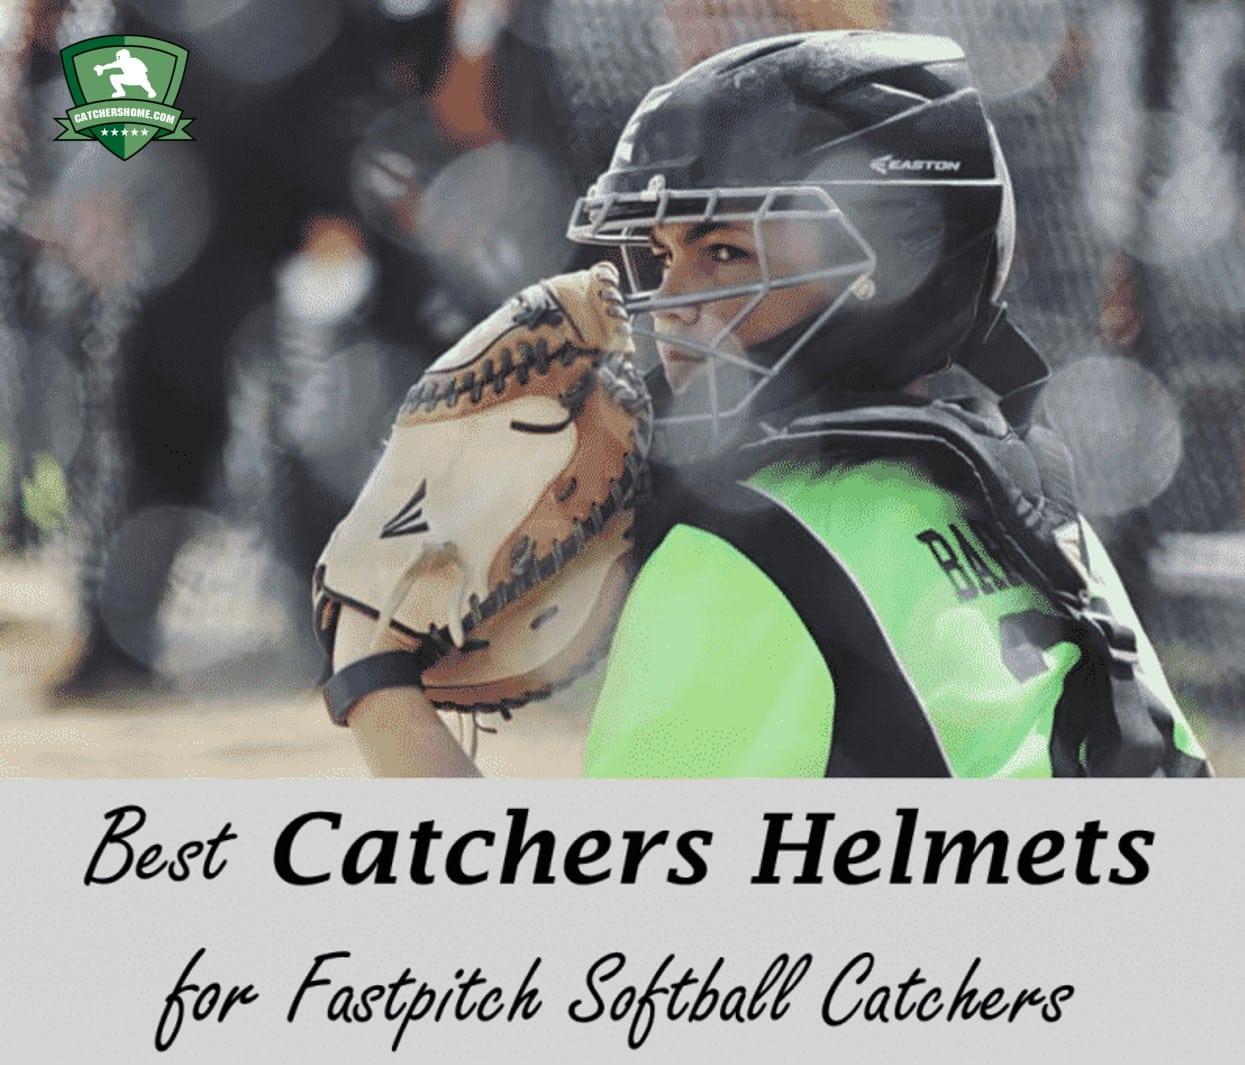 Fastpitch Softball Catchers Helmet. Picture of Softball Catcher getting the sign.